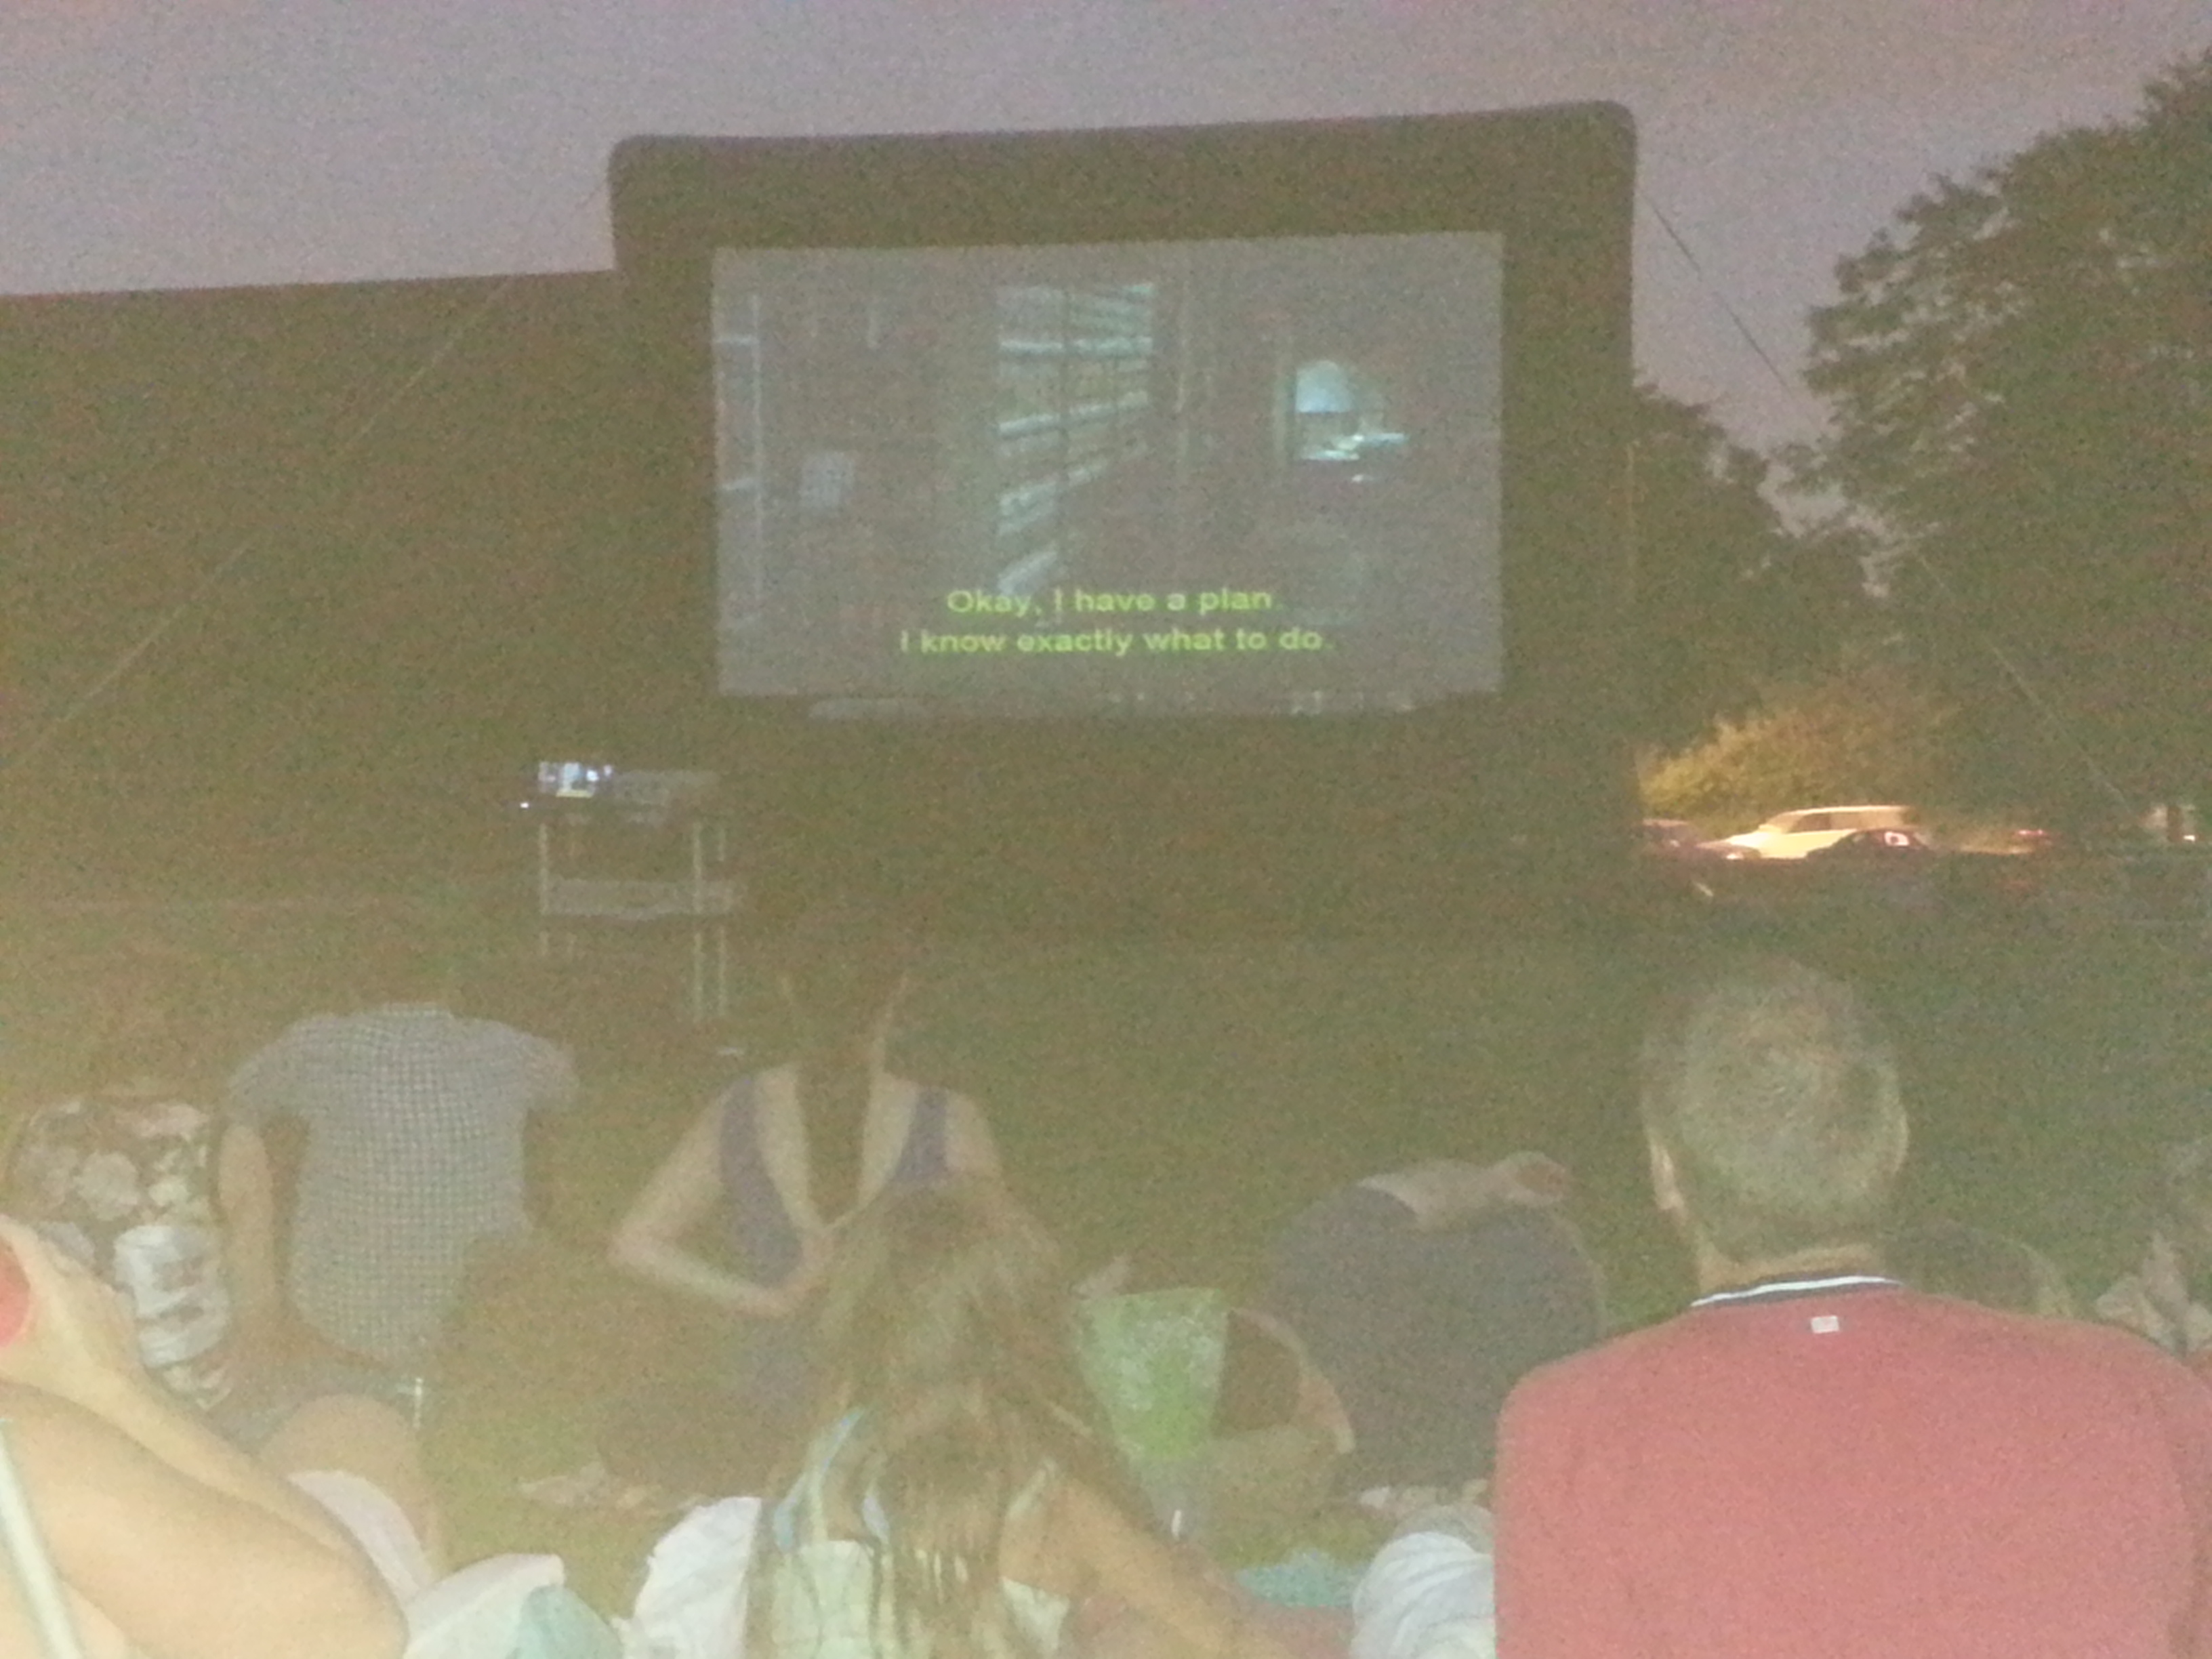 Residents enjoy a night in the park watching GhostBusters, underwritten by the Smith Park Advisory Council